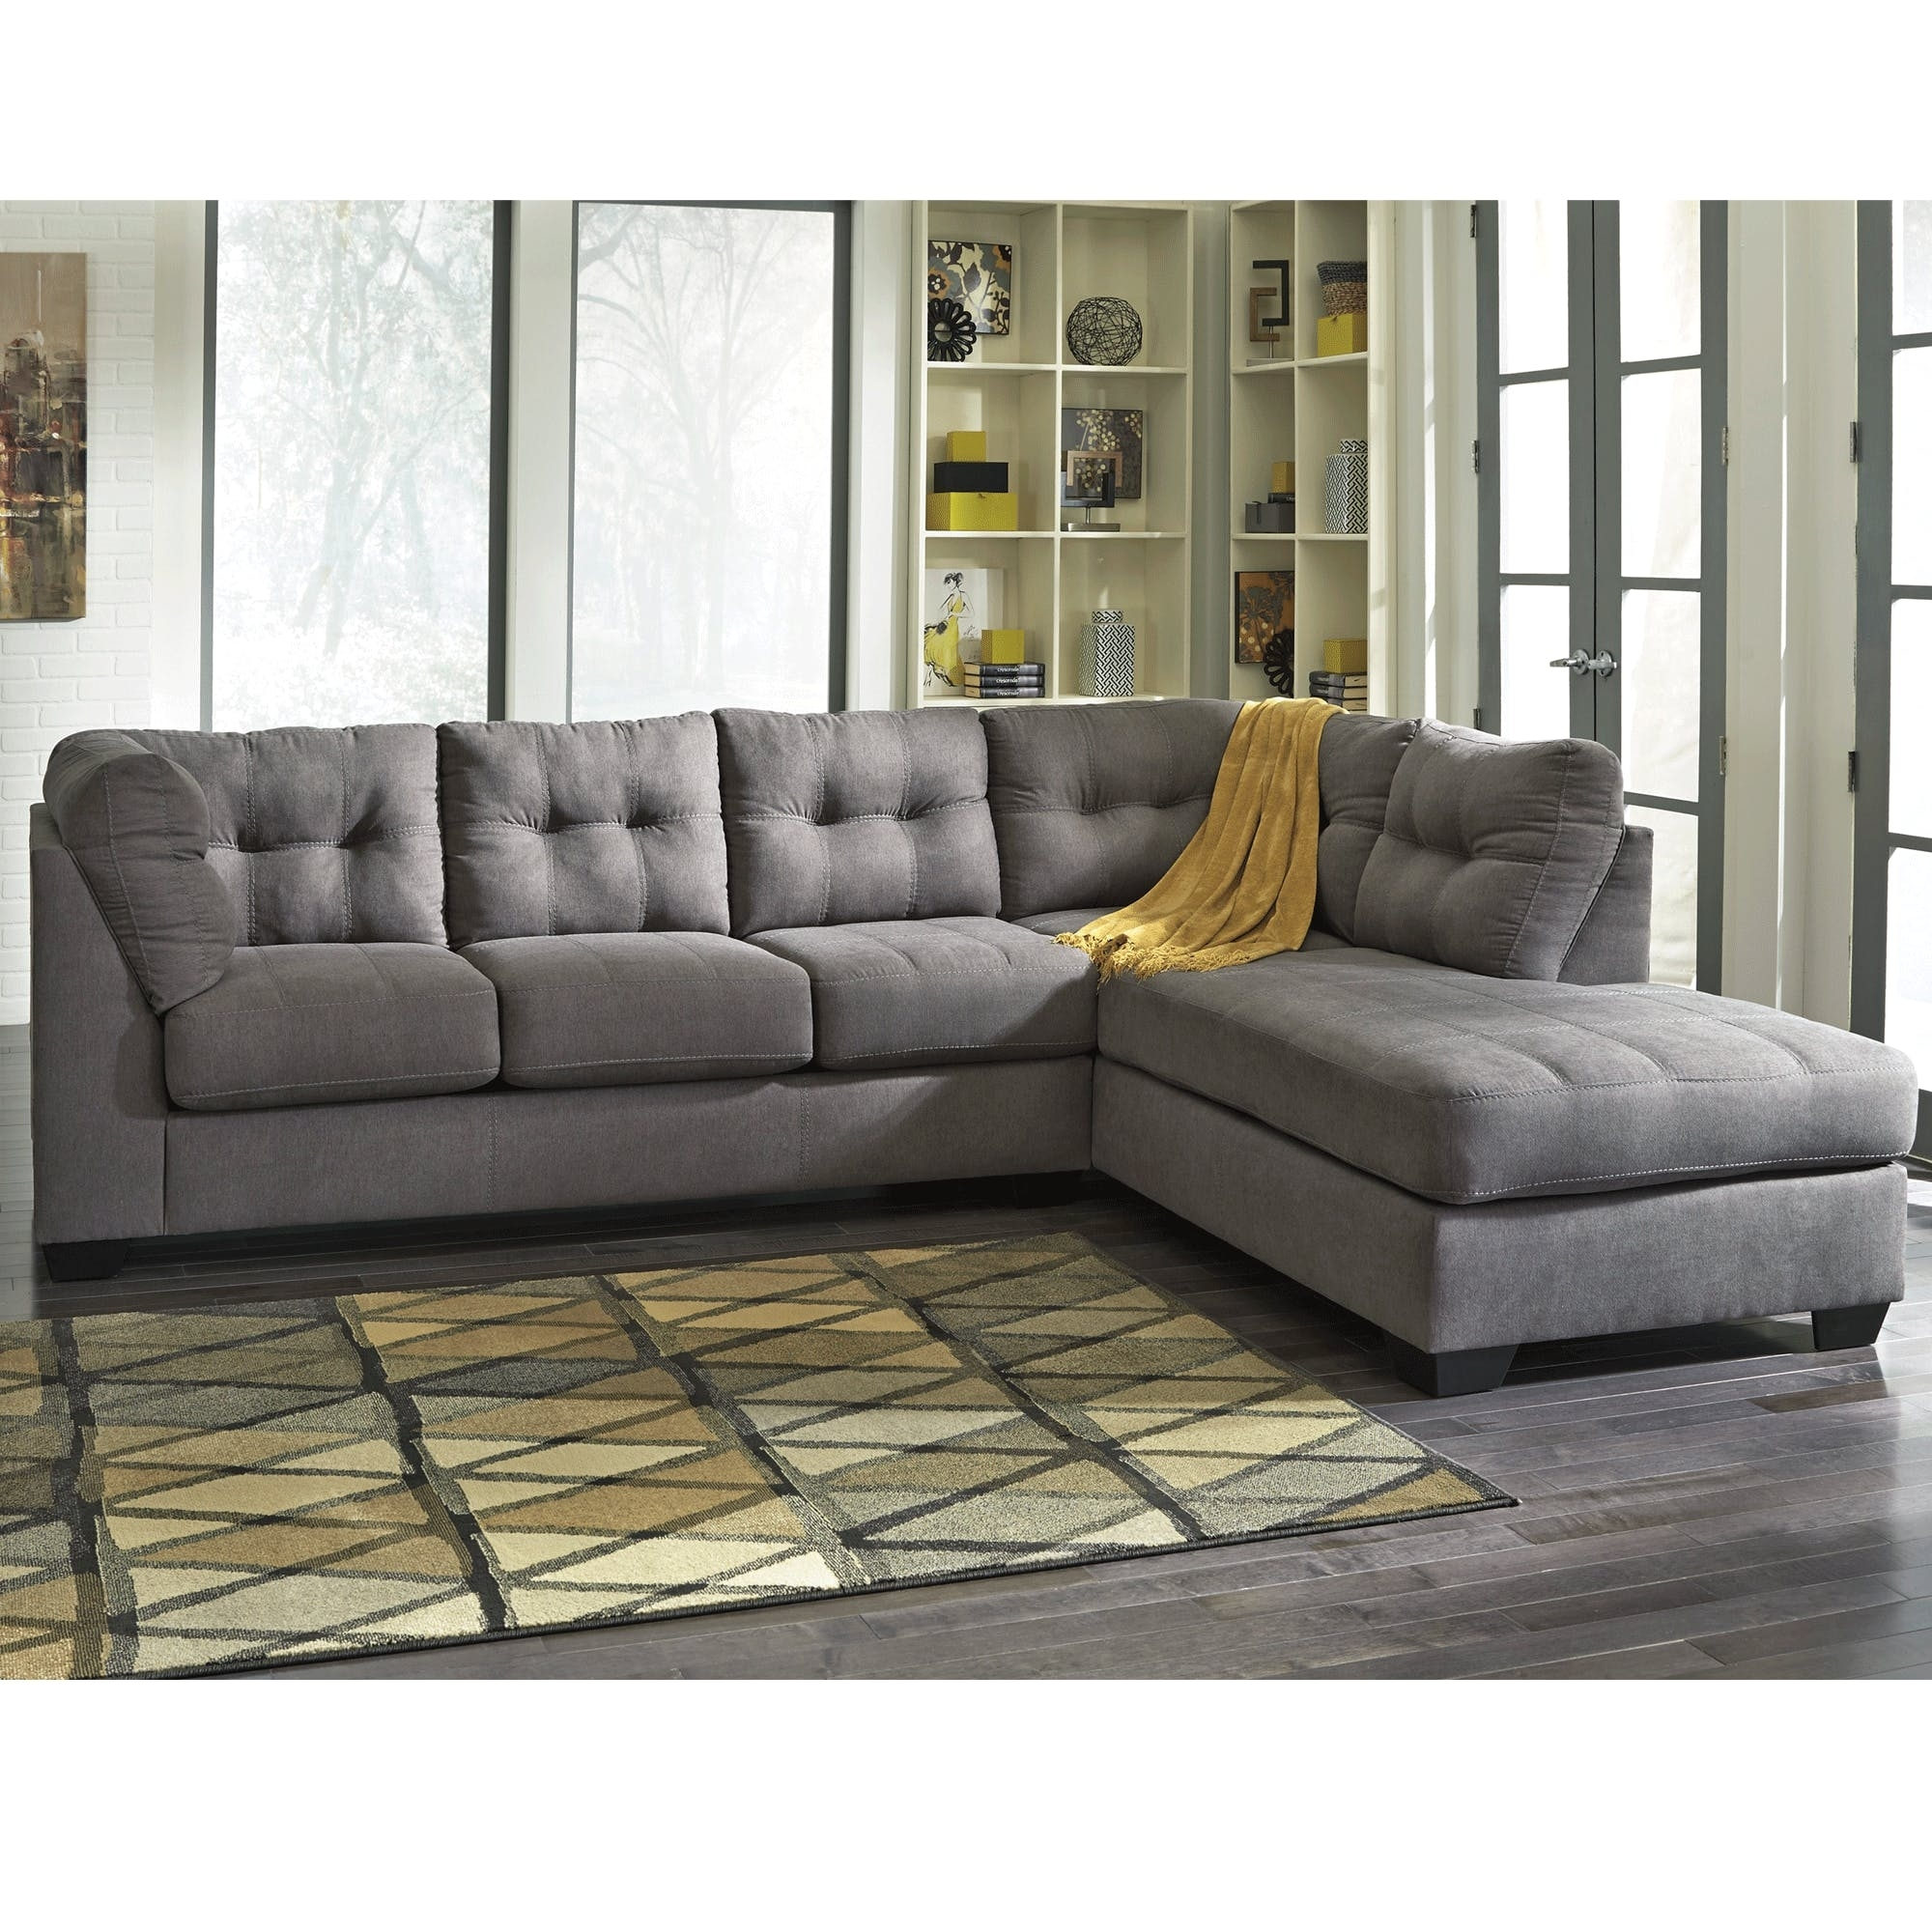 Maier Charcoal 2 Piece Sectional - Bernie & Phyl's Furniture - regarding Cosmos Grey 2 Piece Sectionals With Laf Chaise (Image 16 of 30)